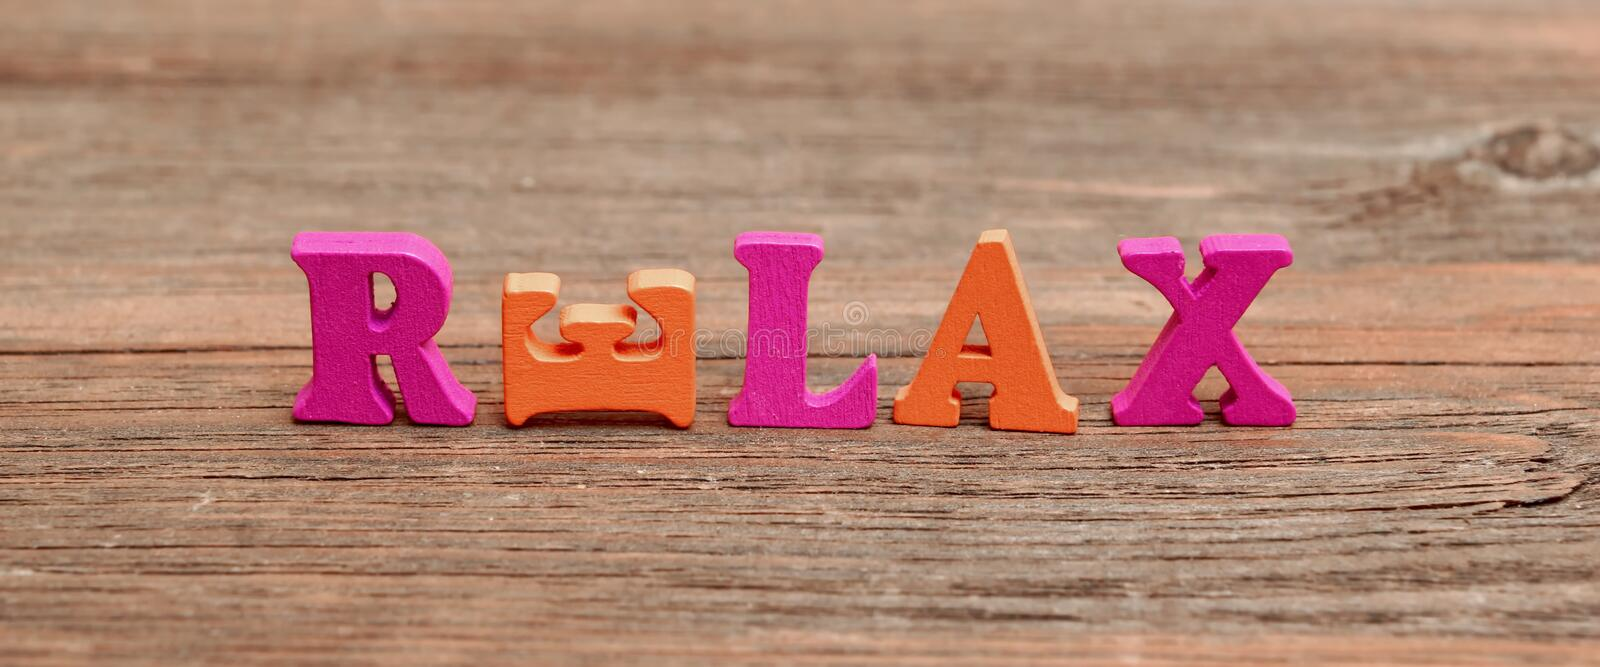 Sign Relax on the wood board royalty free stock image